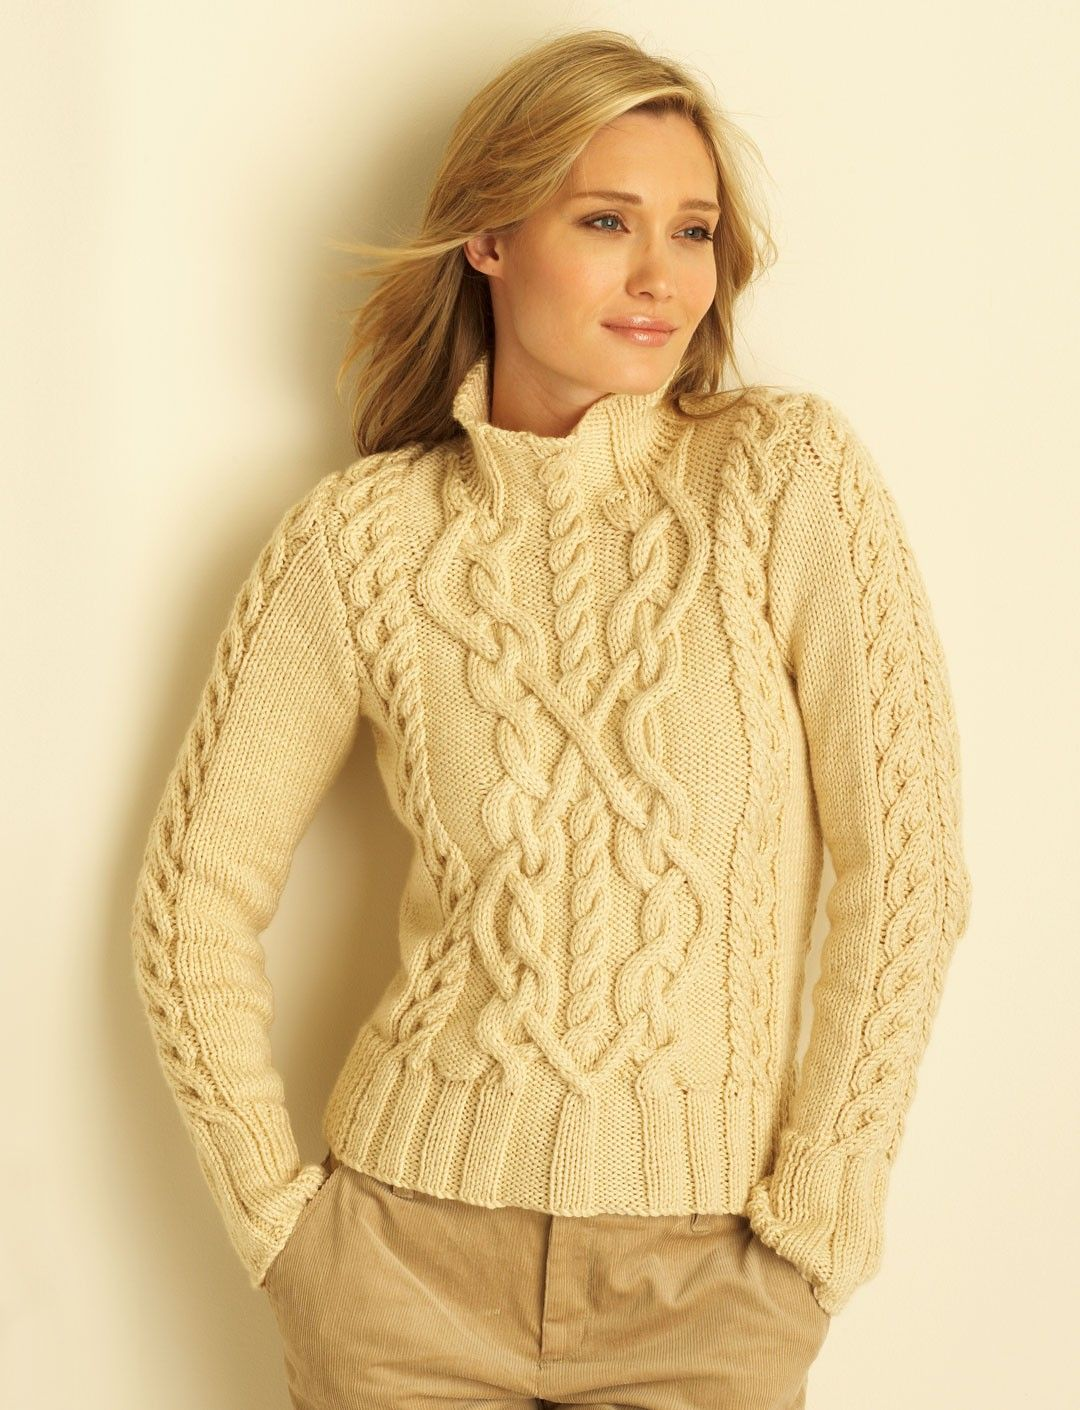 Yarnspirations.com - Bernat Cable Sweater - Patterns ...